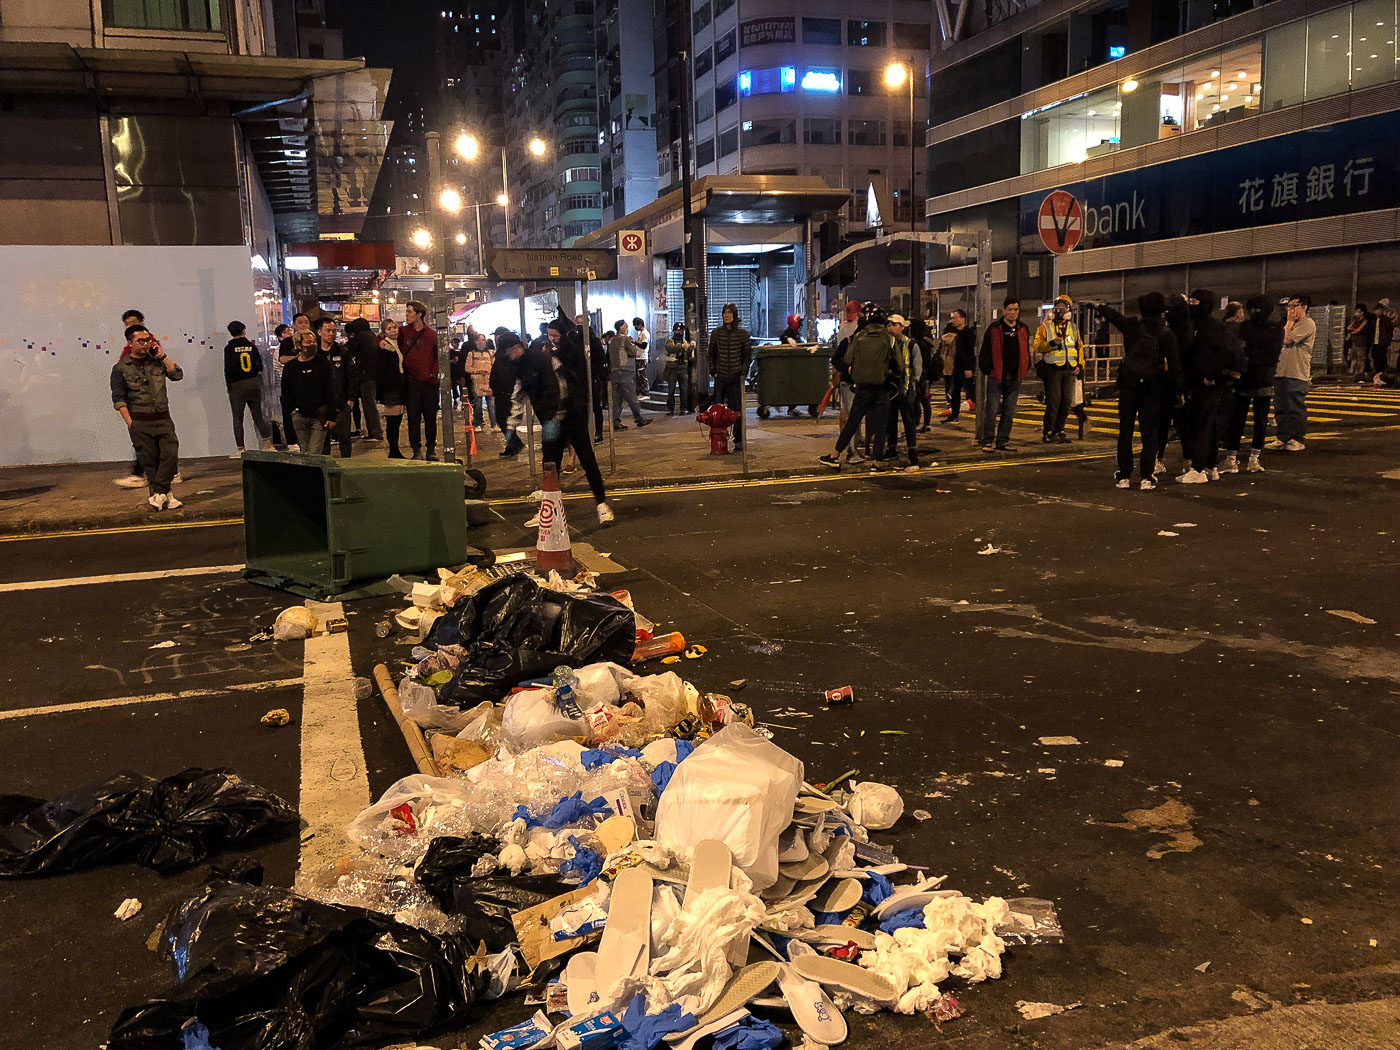 A trash barricade built by protesters in Hong Kong.